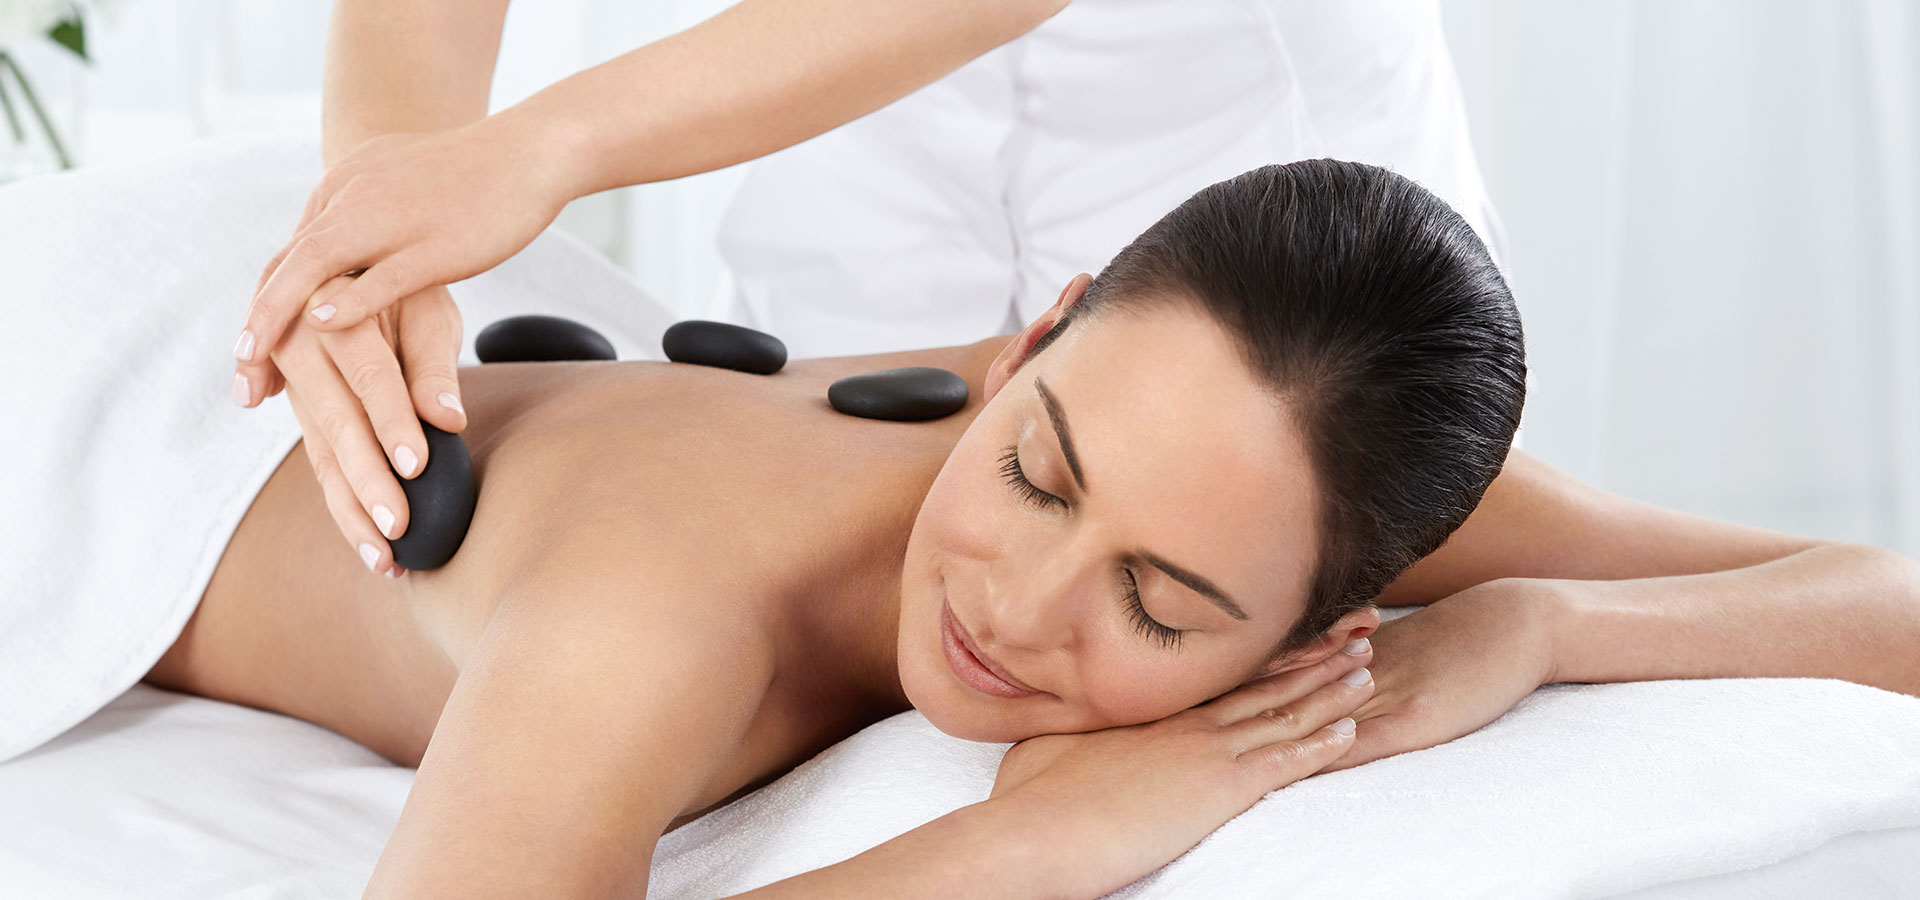 Kensington MediSpa Beauty and Wellbeing Treatments